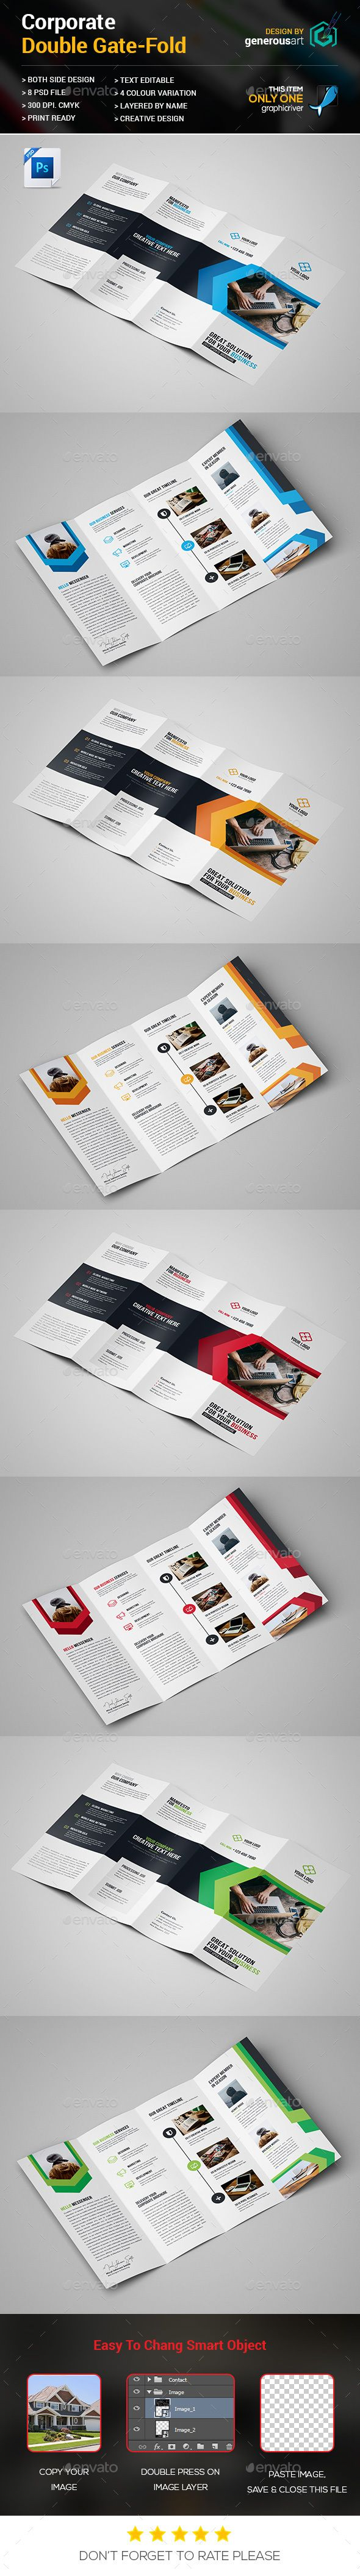 double gate fold brochure templates pinterest brochure